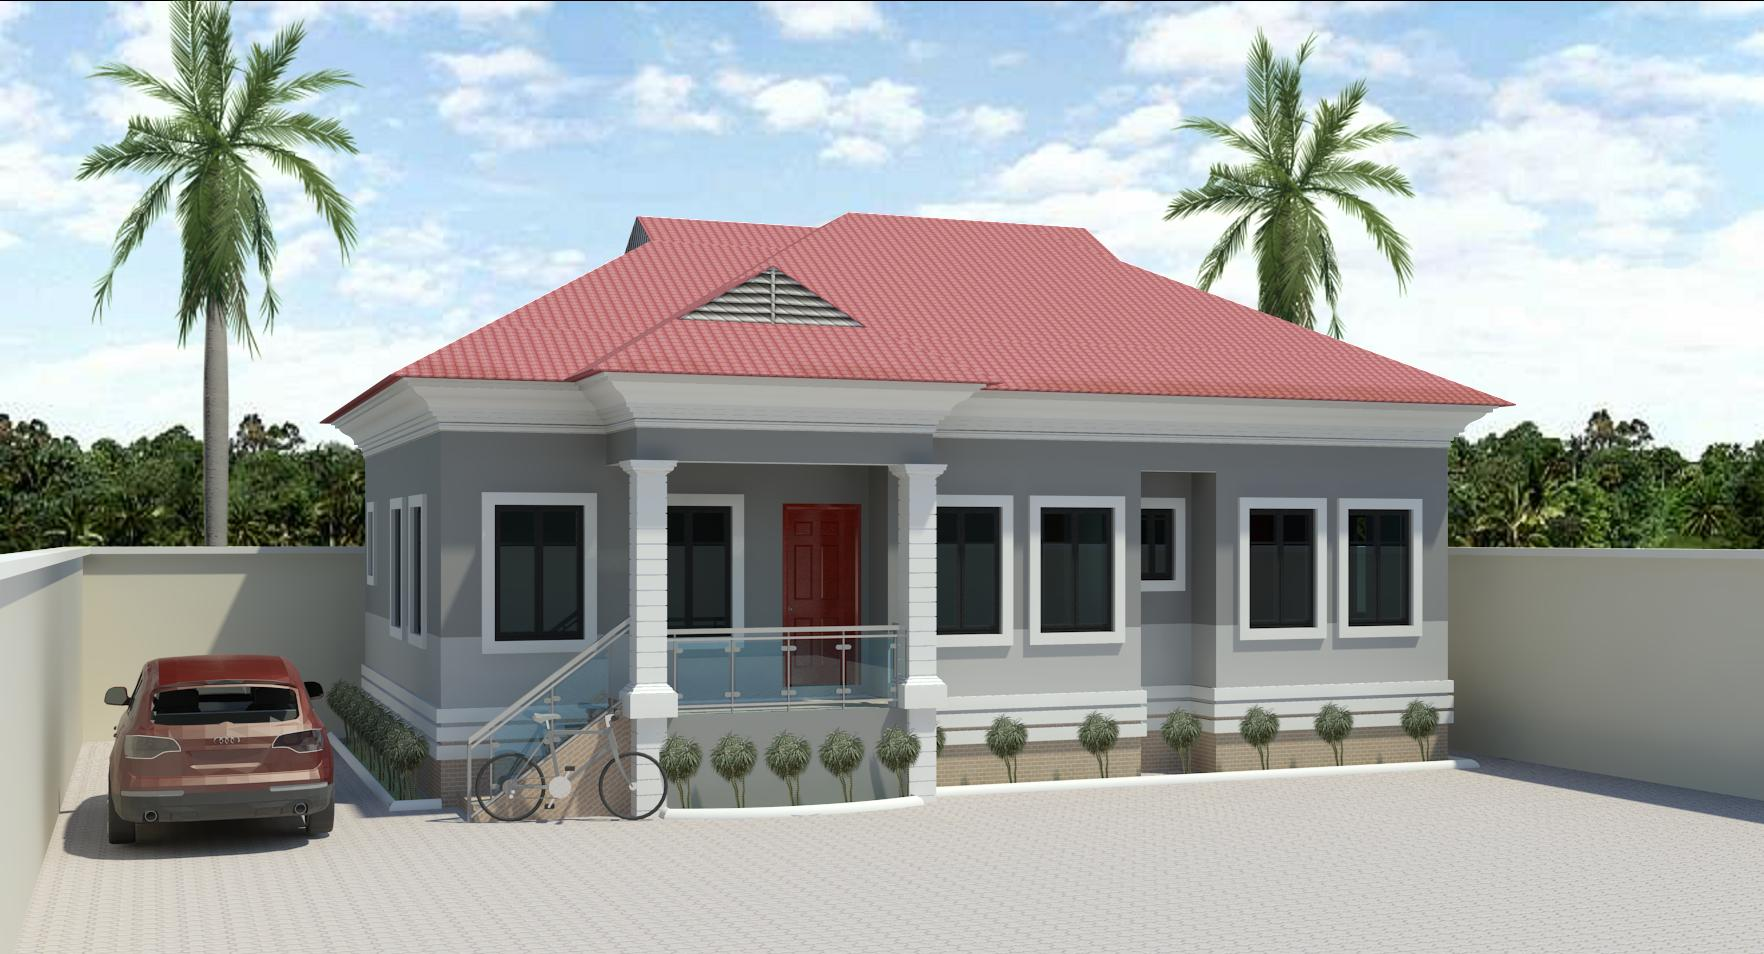 3bedroom bungalow designs in nigeria joy studio design 3 bedroom bungalow house plans